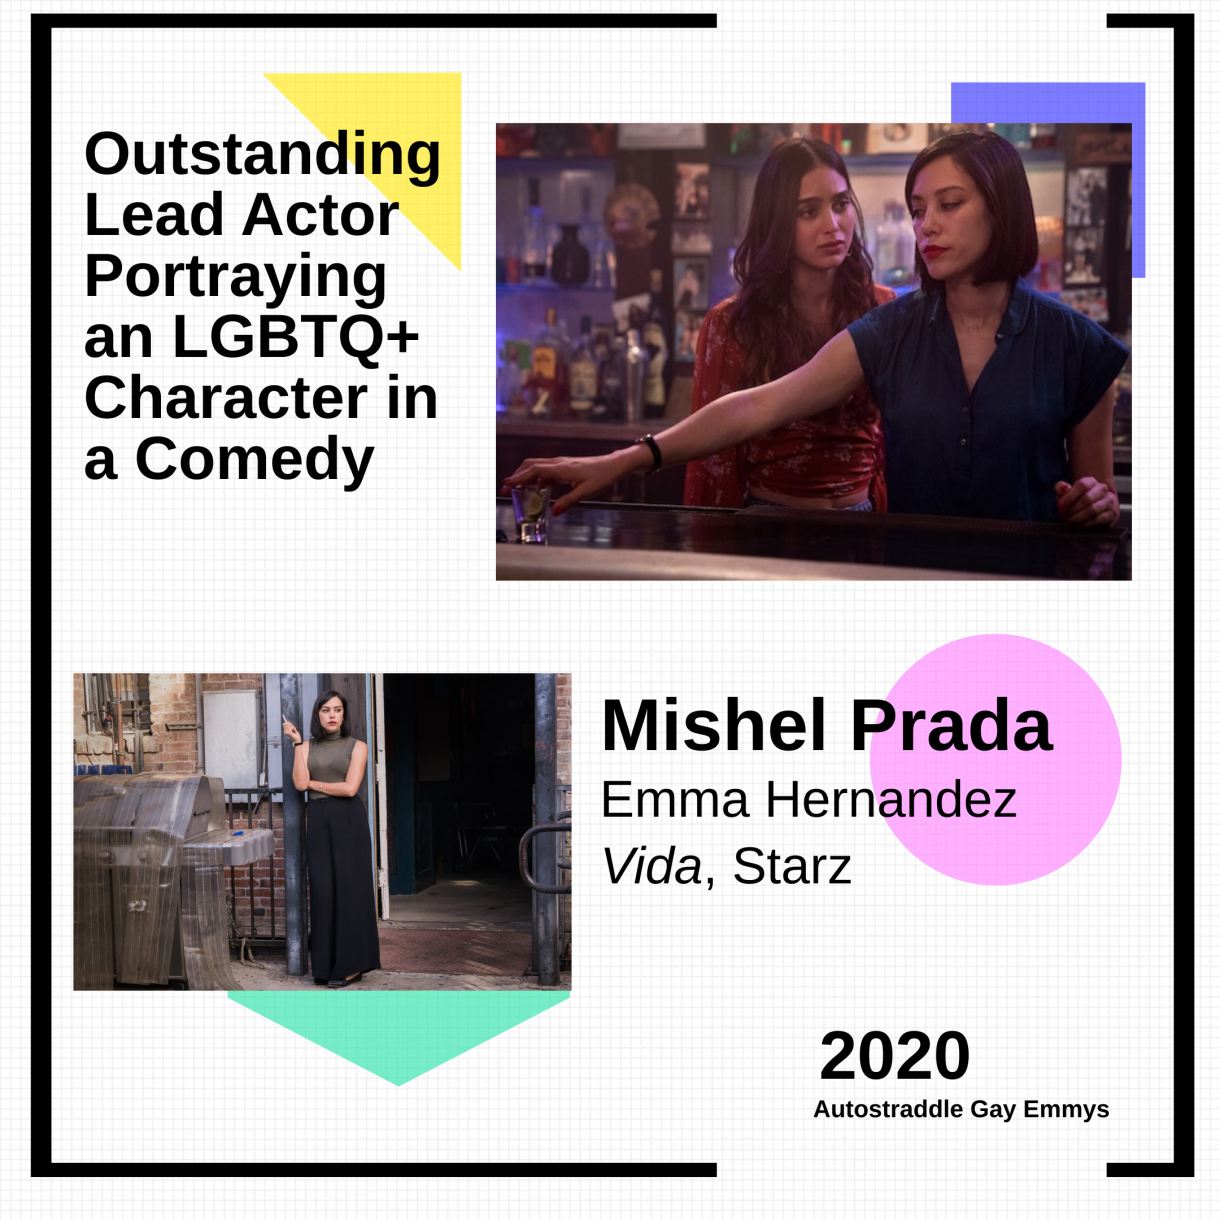 Graphic announcing Outstanding Lead Actor Portraying an LGBTQ+ Character in a Comedy is Mishel Prada as Emma, Vida